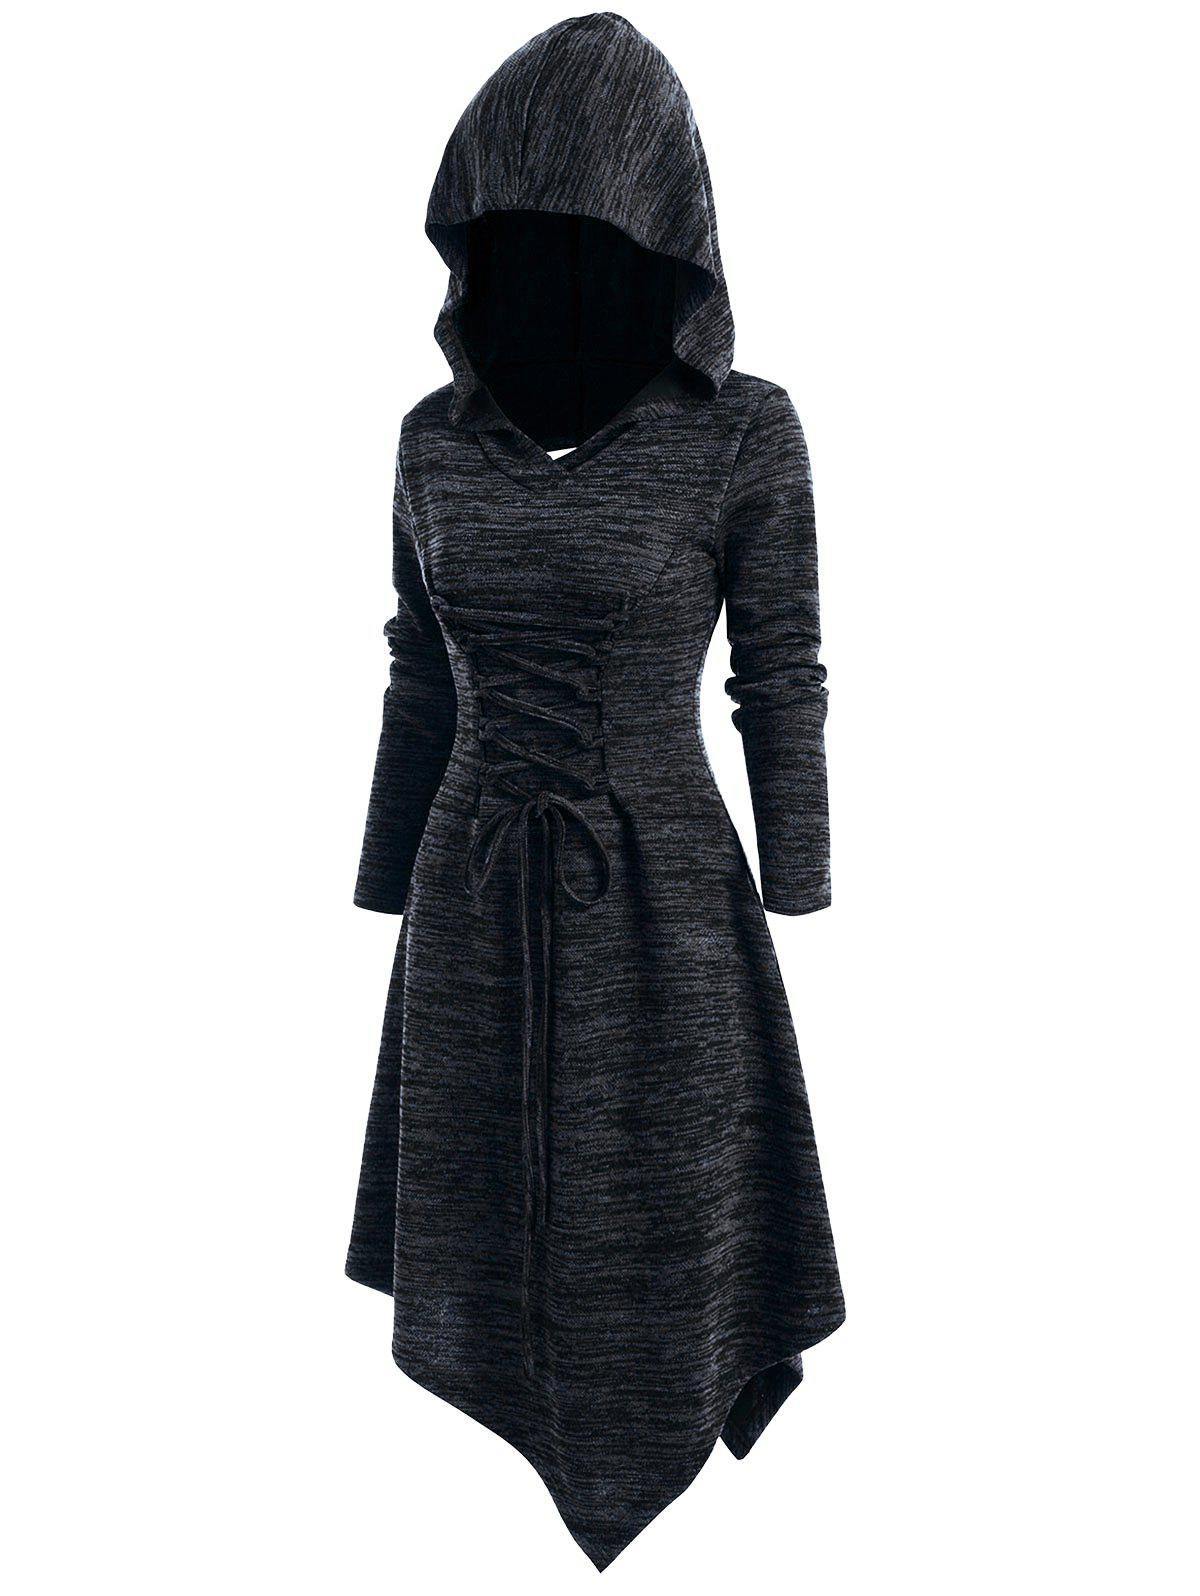 Lace Up Heathered Asymmetric Hooded Dress - BLACK M